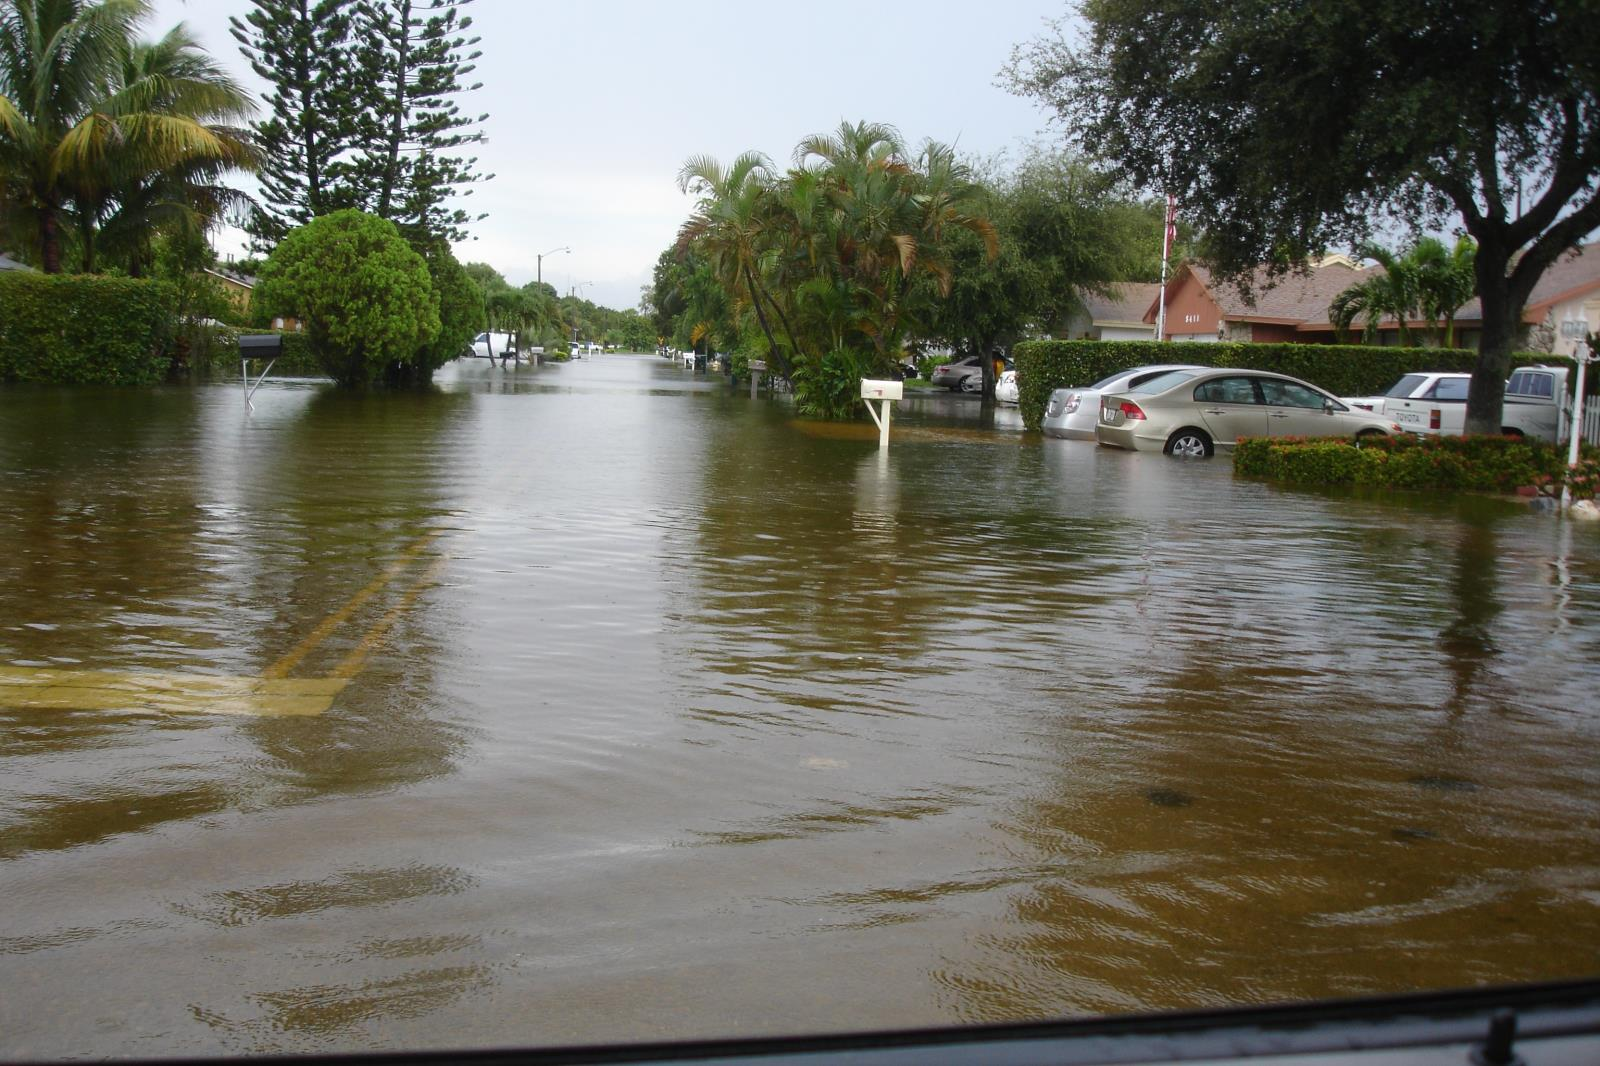 Recent flooding on NW 82 Avenue from Tropical Storm Isaac